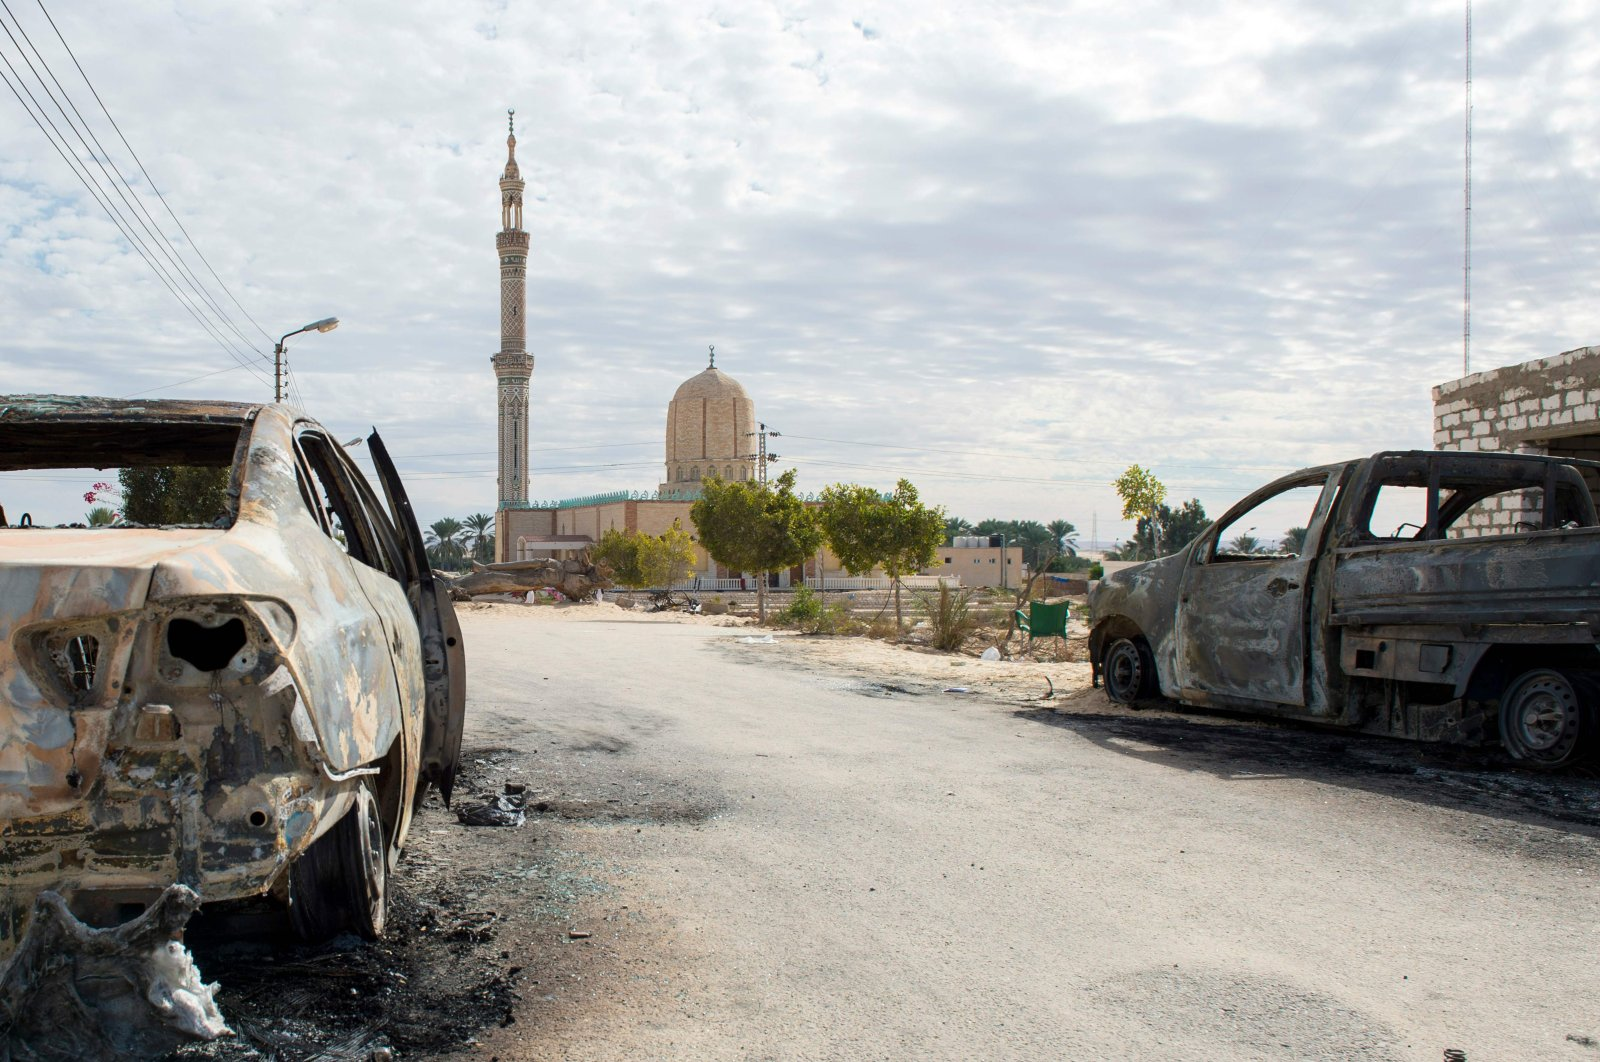 A picture taken on November 25, 2017, shows the Rawda mosque, roughly 49 kilometres west of the north Sinai capital of El-Arish, after a gun and bombing attack armed attackers killed at least 235 worshippers in a bomb and gun assault on the packed mosque in Egypt's restive north Sinai province, in the country's deadliest attack in recent memory. (AFP Photo)